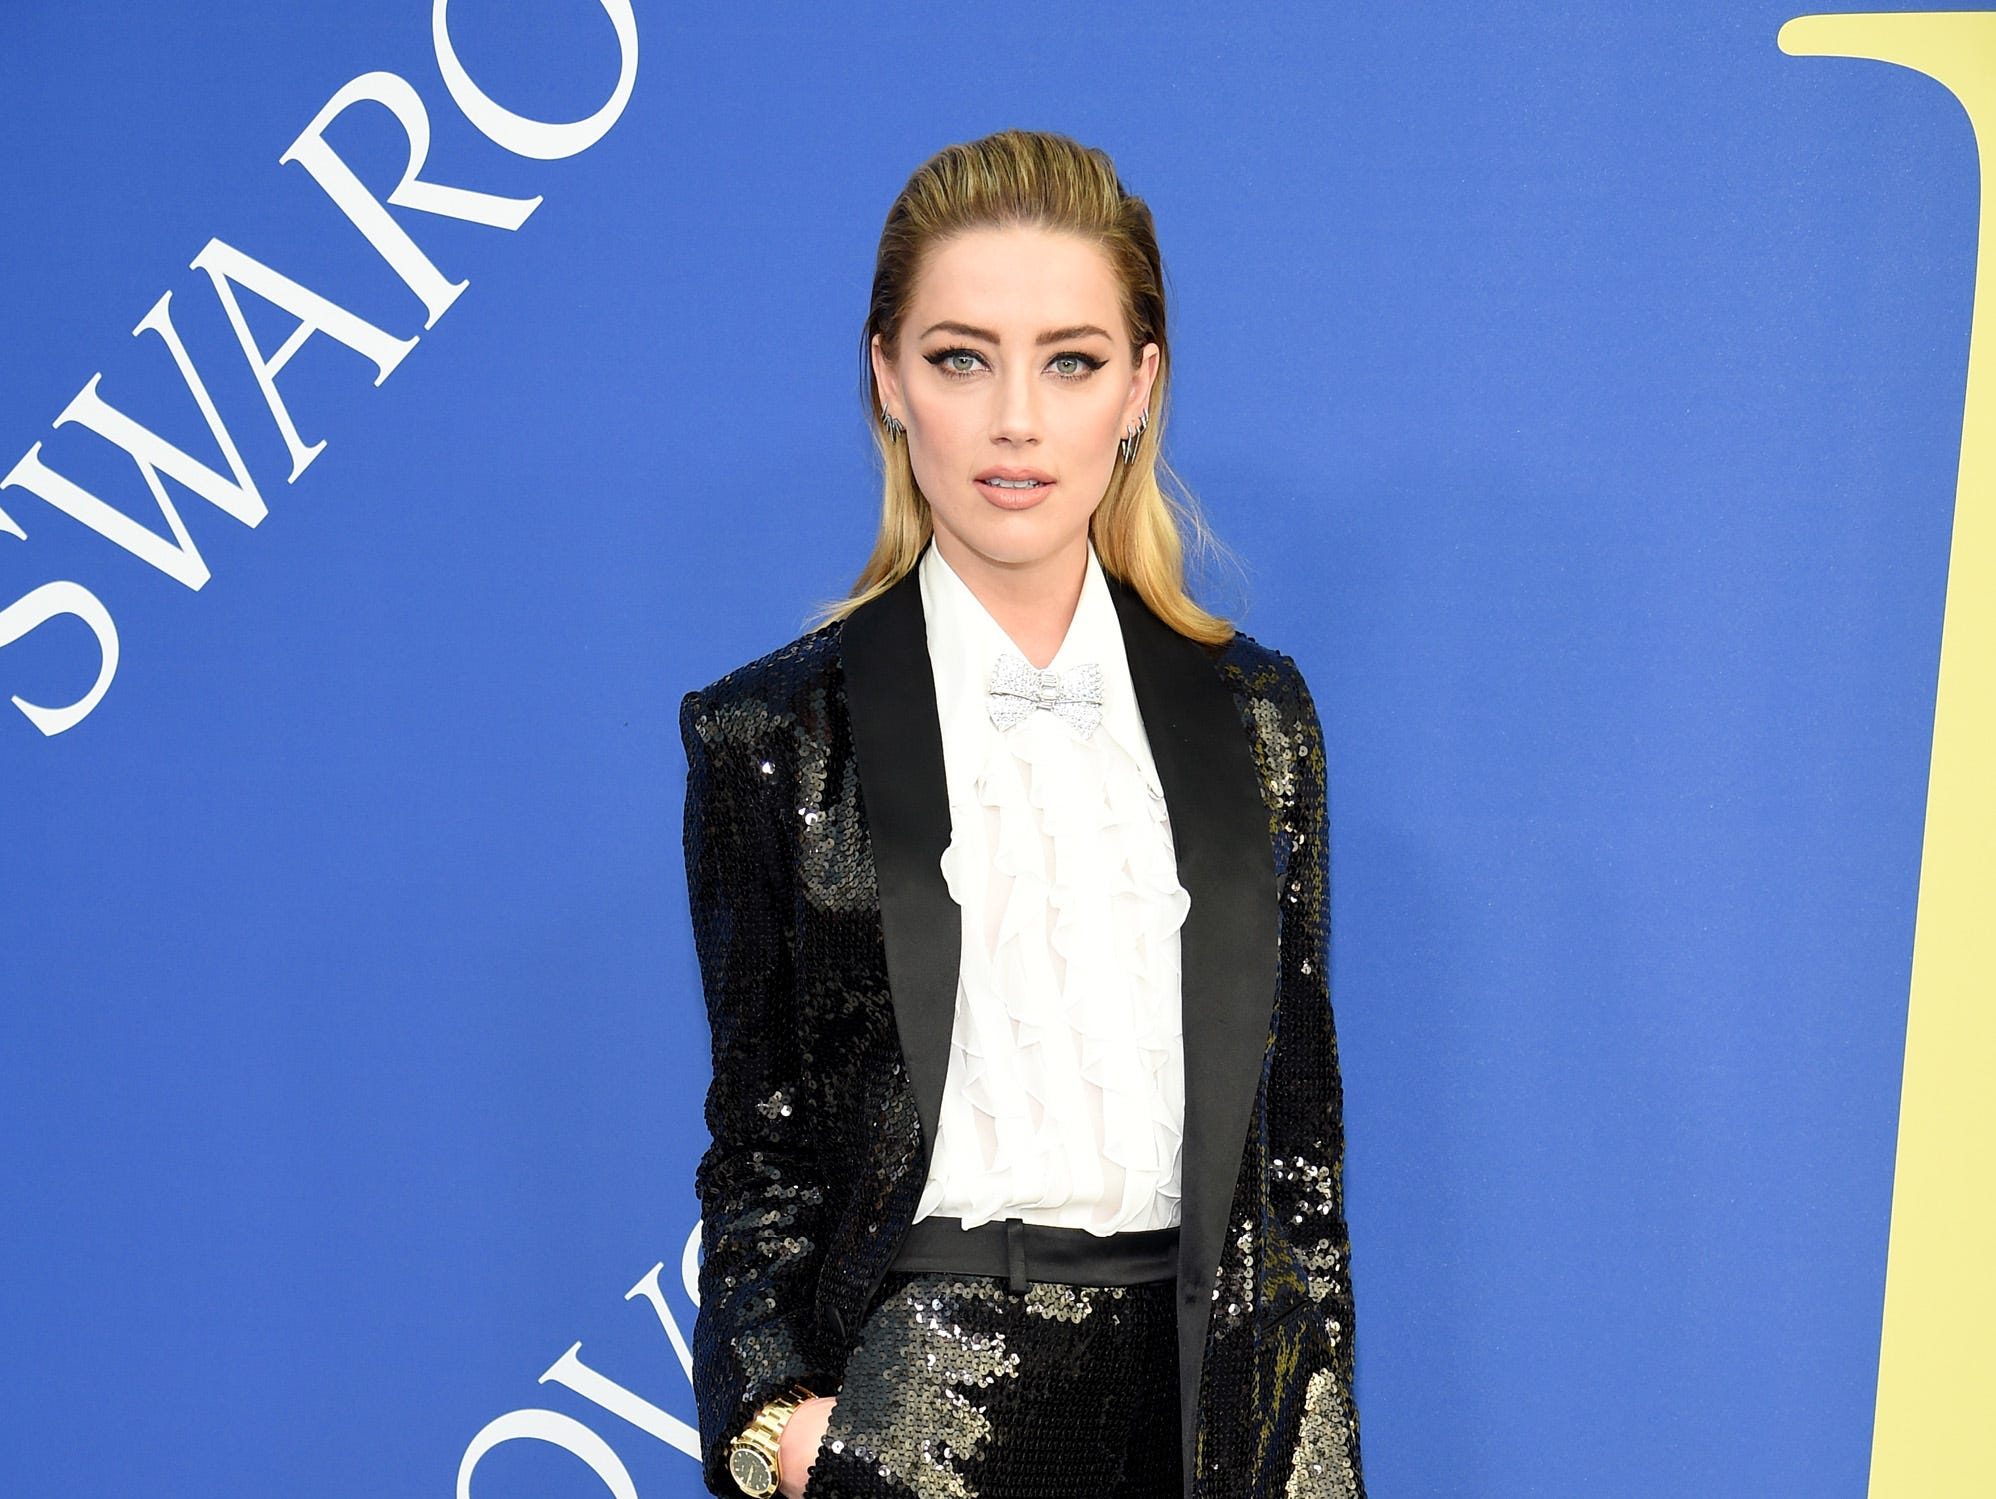 NEW YORK, NY - JUNE 04:  Amber Heard attends the 2018 CFDA Fashion Awards at Brooklyn Museum on June 4, 2018 in New York City.  (Photo by Dimitrios Kambouris/Getty Images) ORG XMIT: 775160955 ORIG FILE ID: 967399170